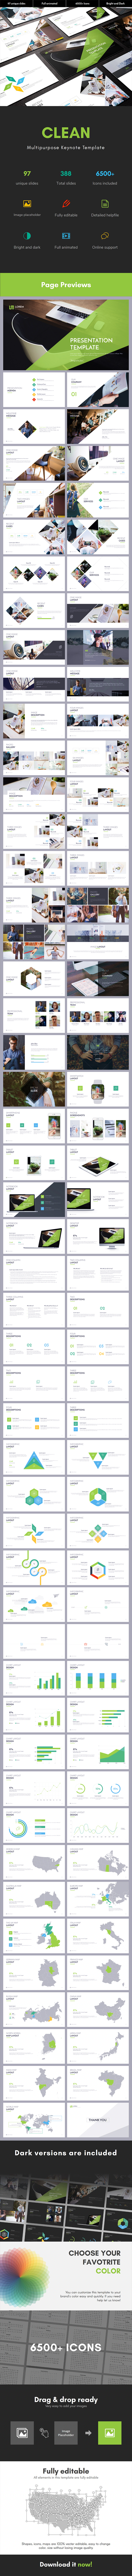 Clean Multipurpose Keynote Template - Business Keynote Templates